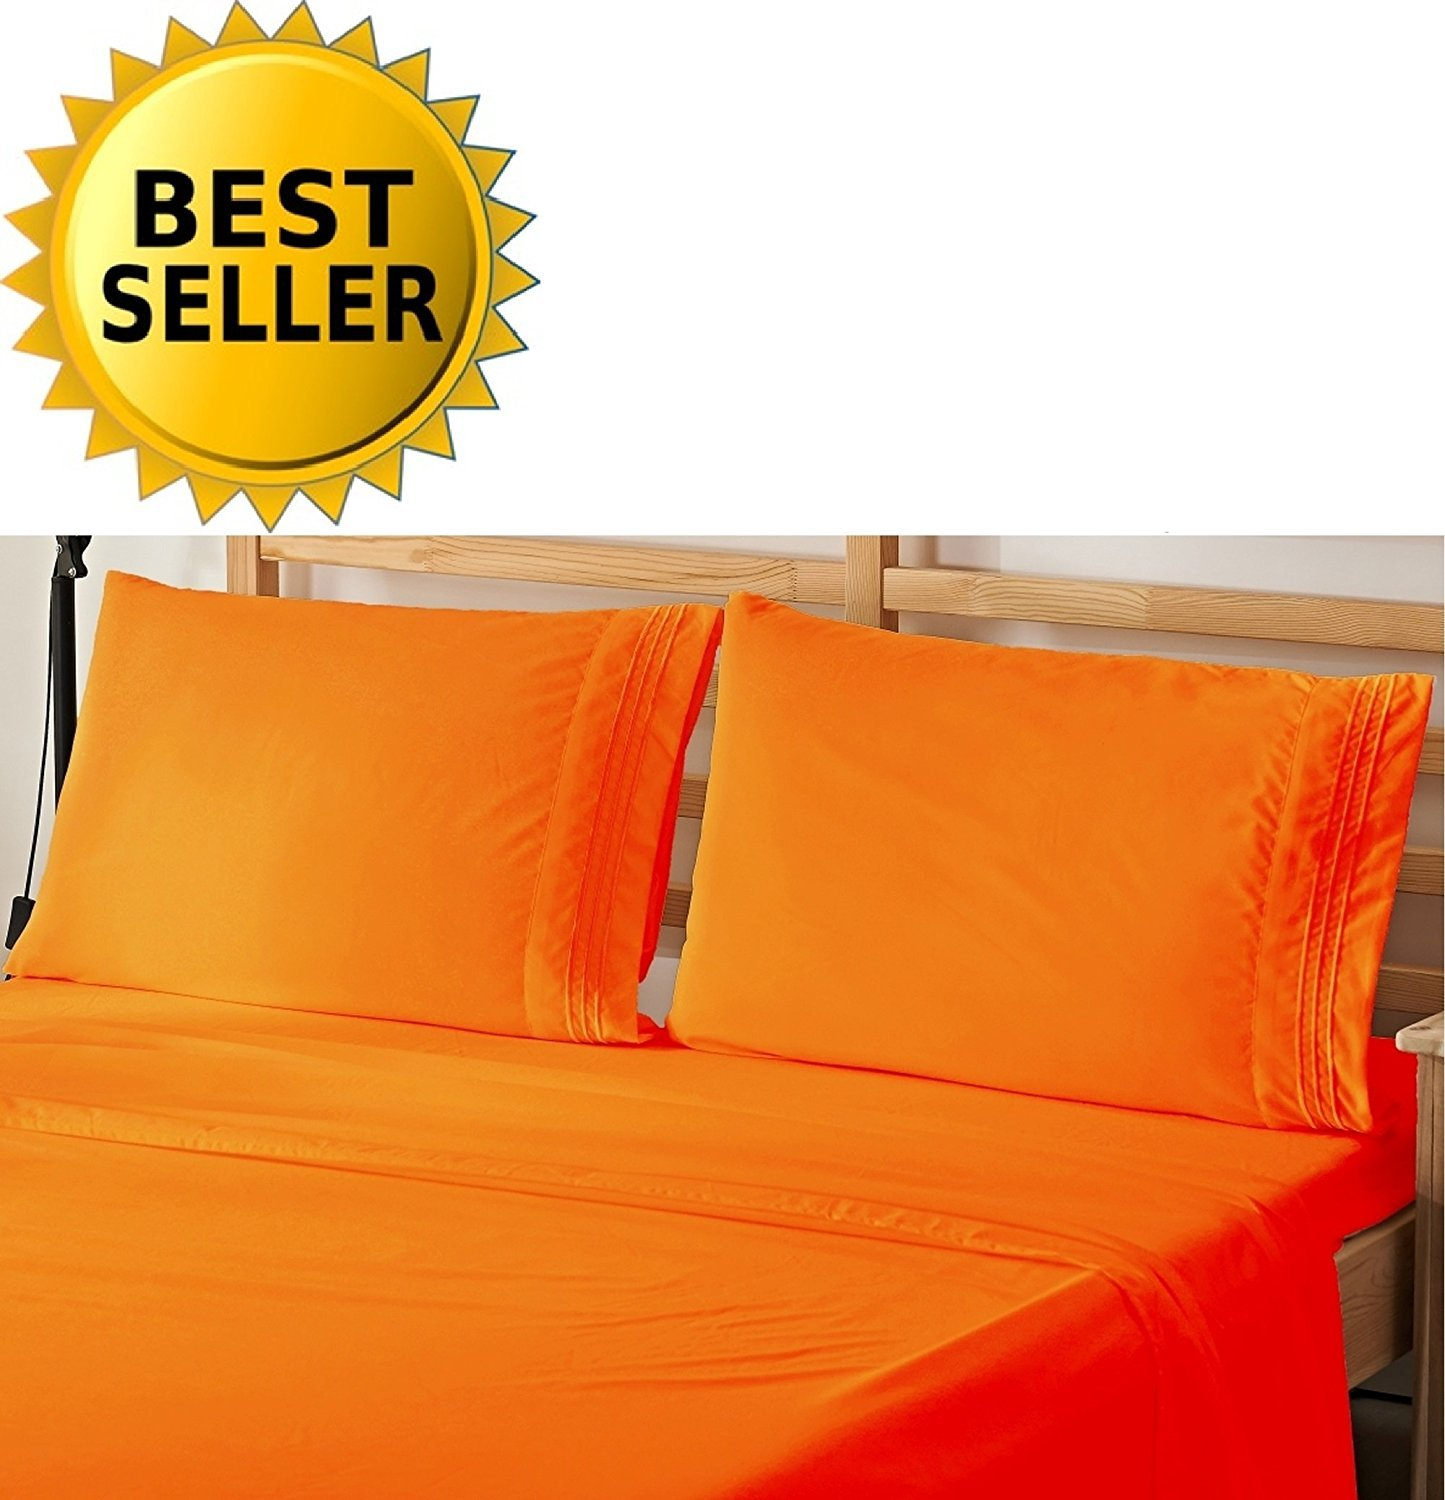 4-Piece Bed Sheet Bedding Set Full, Flame Orange